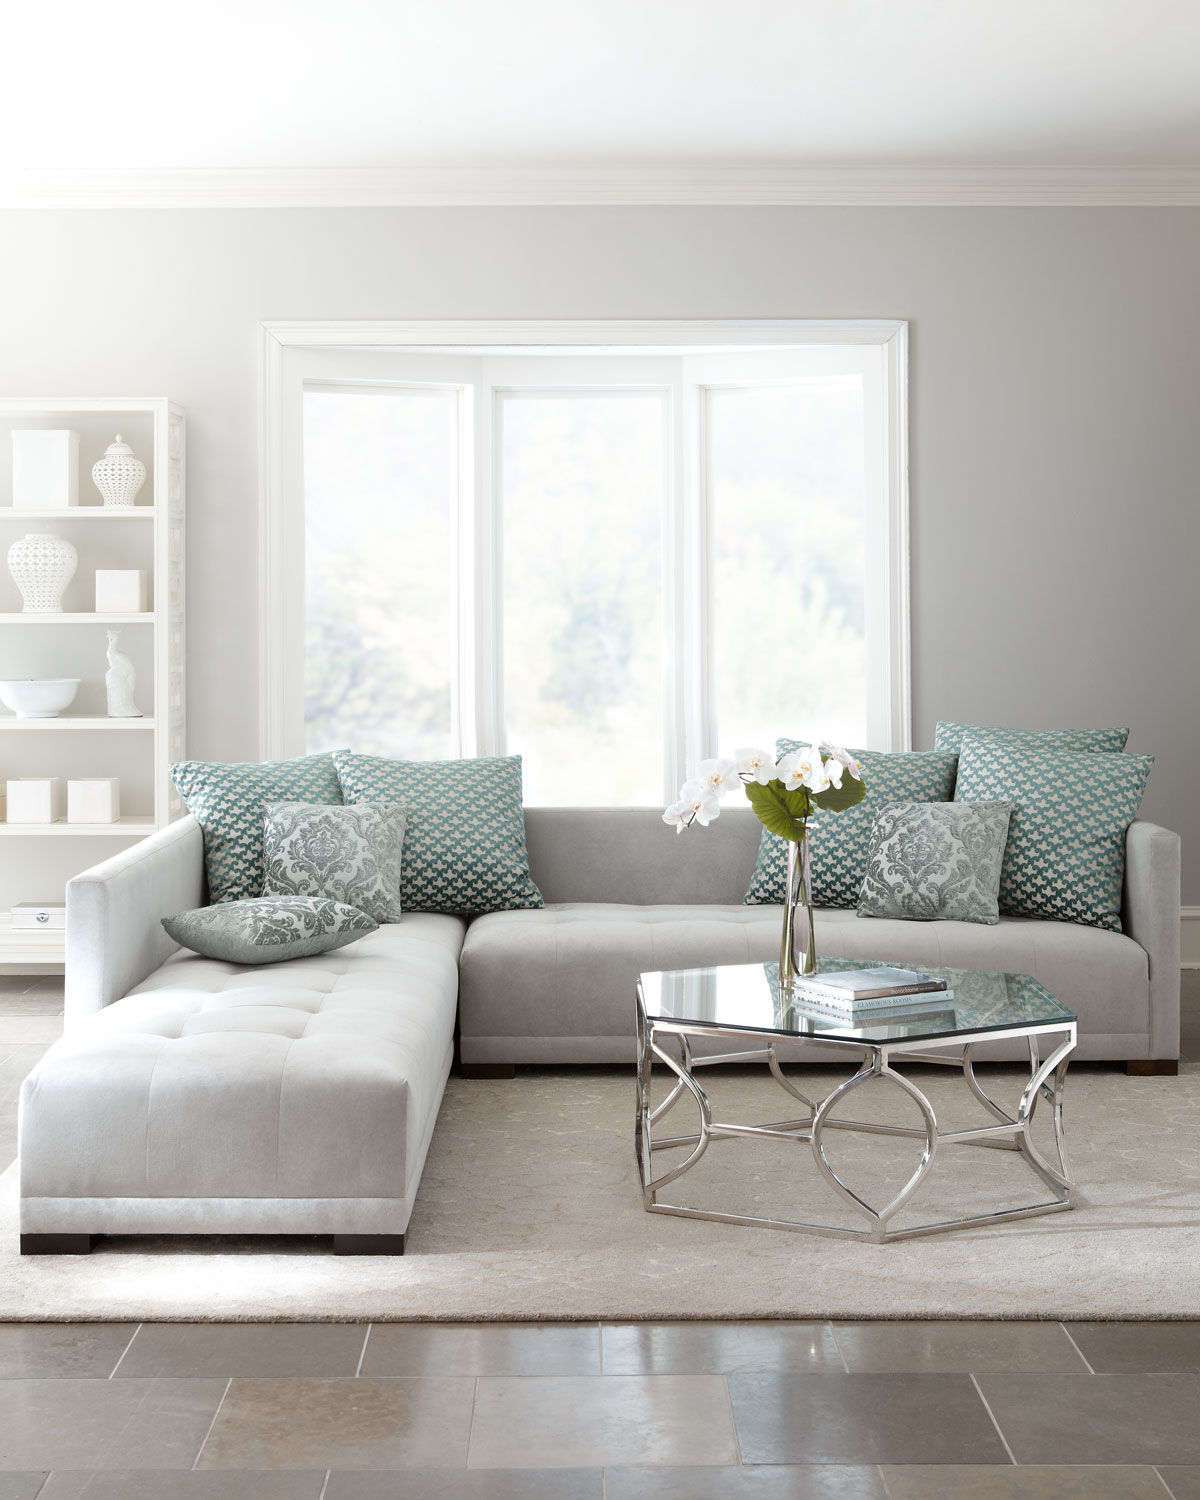 7 Ways to Use Duck Egg Blue to Spruce Up Your Living Room Decor_1 duck egg blue 7 Ways to Use Duck Egg Blue to Spruce Up Your Living Room Decor 7 Ways to Use Duck Egg Blue to Spruce Up Your Living Room Decor 3